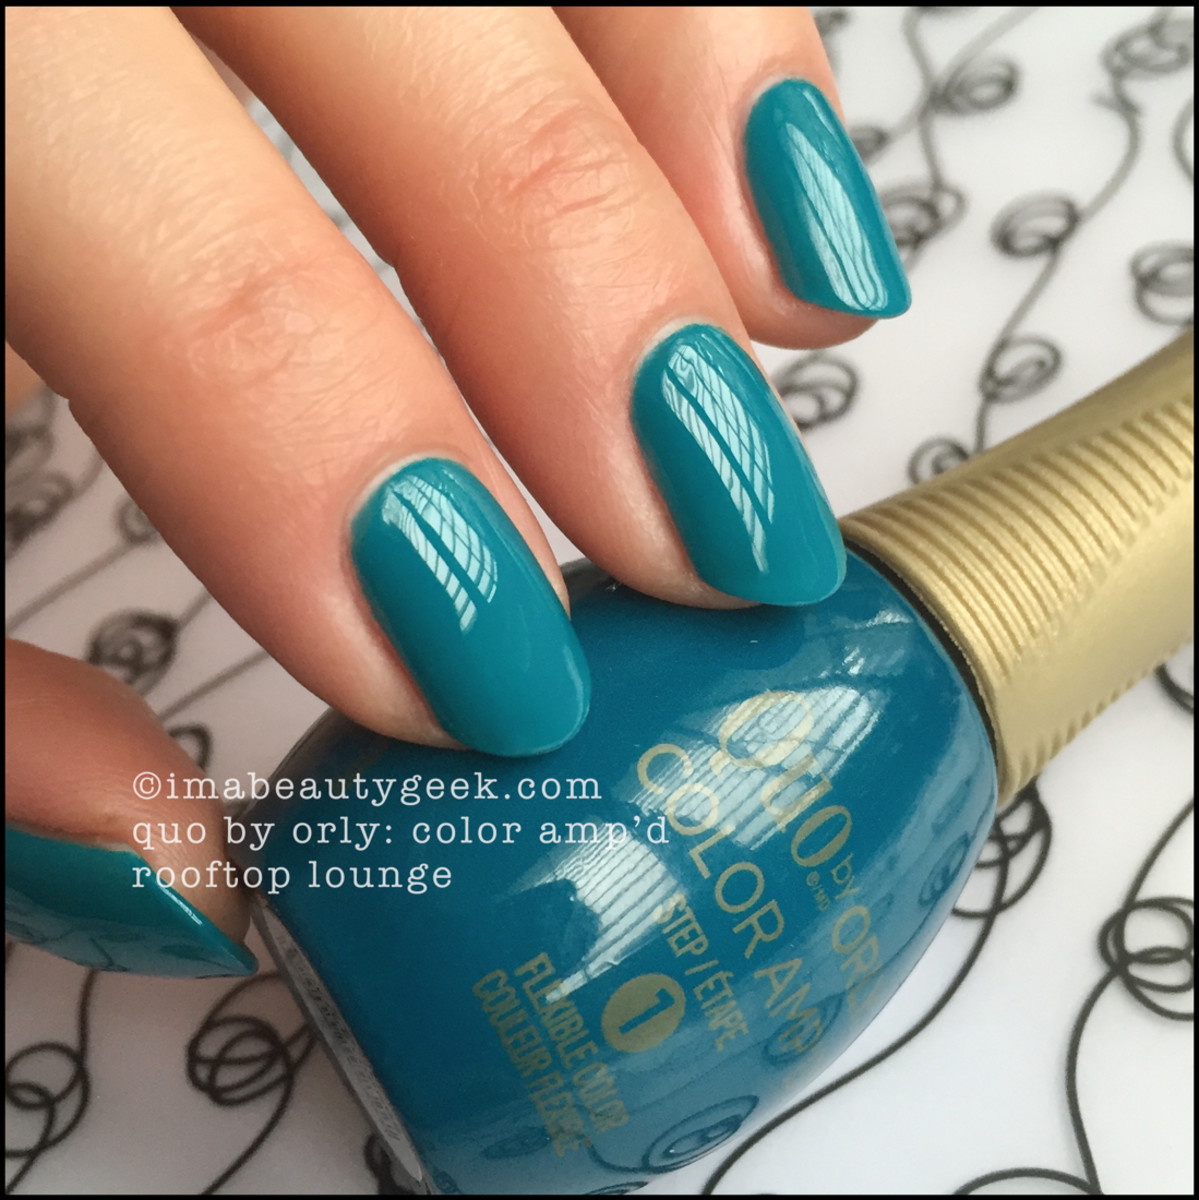 Quo Color Ampd Rooftop Lounge_Quo by Orly Epix Swatches